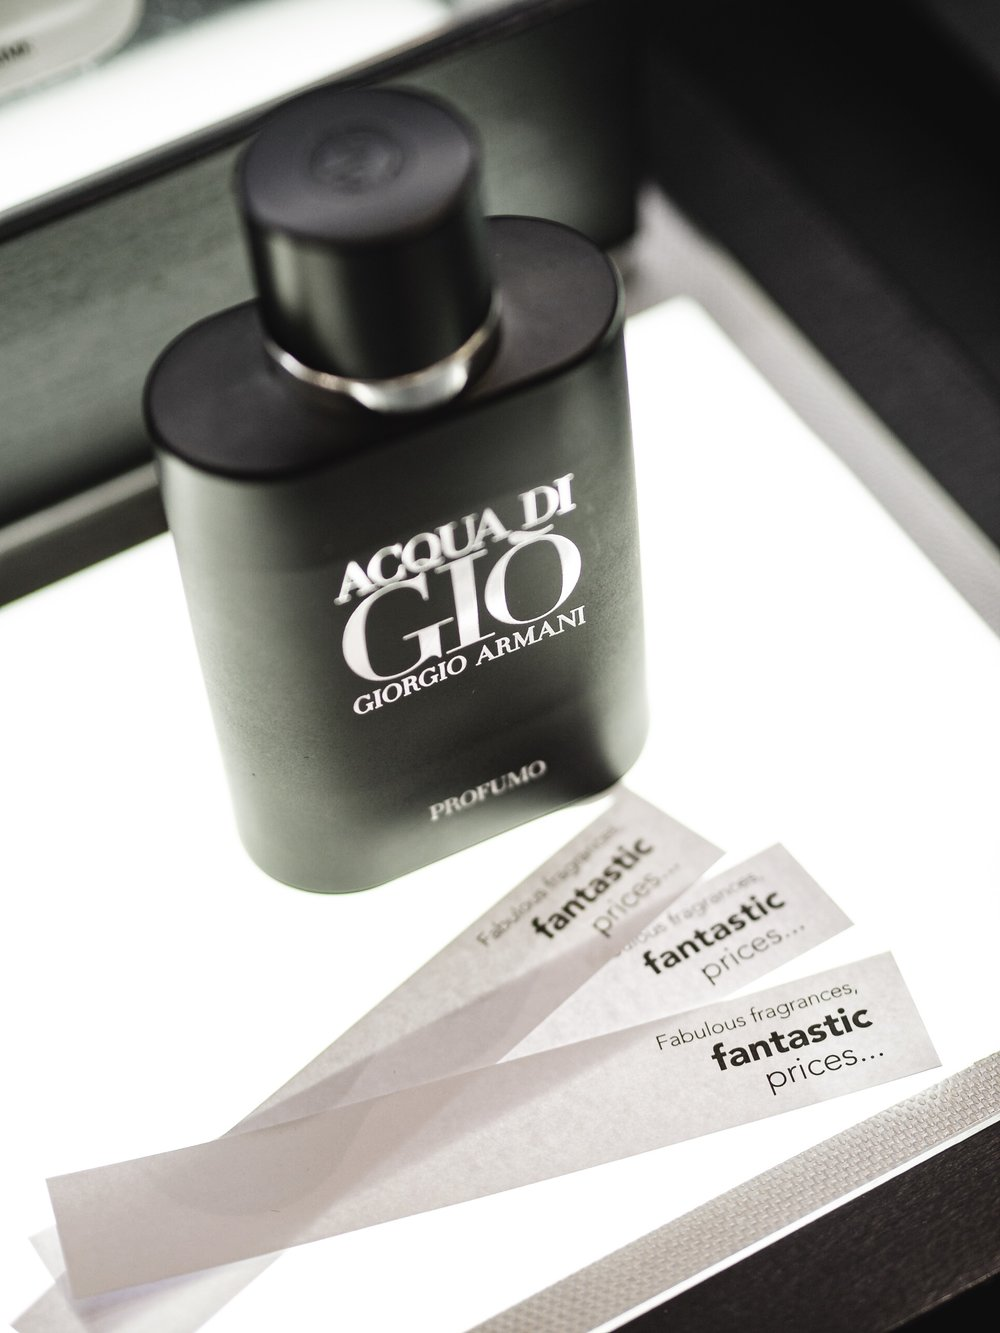 Heathrow Airport World Duty Free Fragrance Tester Testing Strips Strip Giorgio Armani Aqua Di Gio Profumo